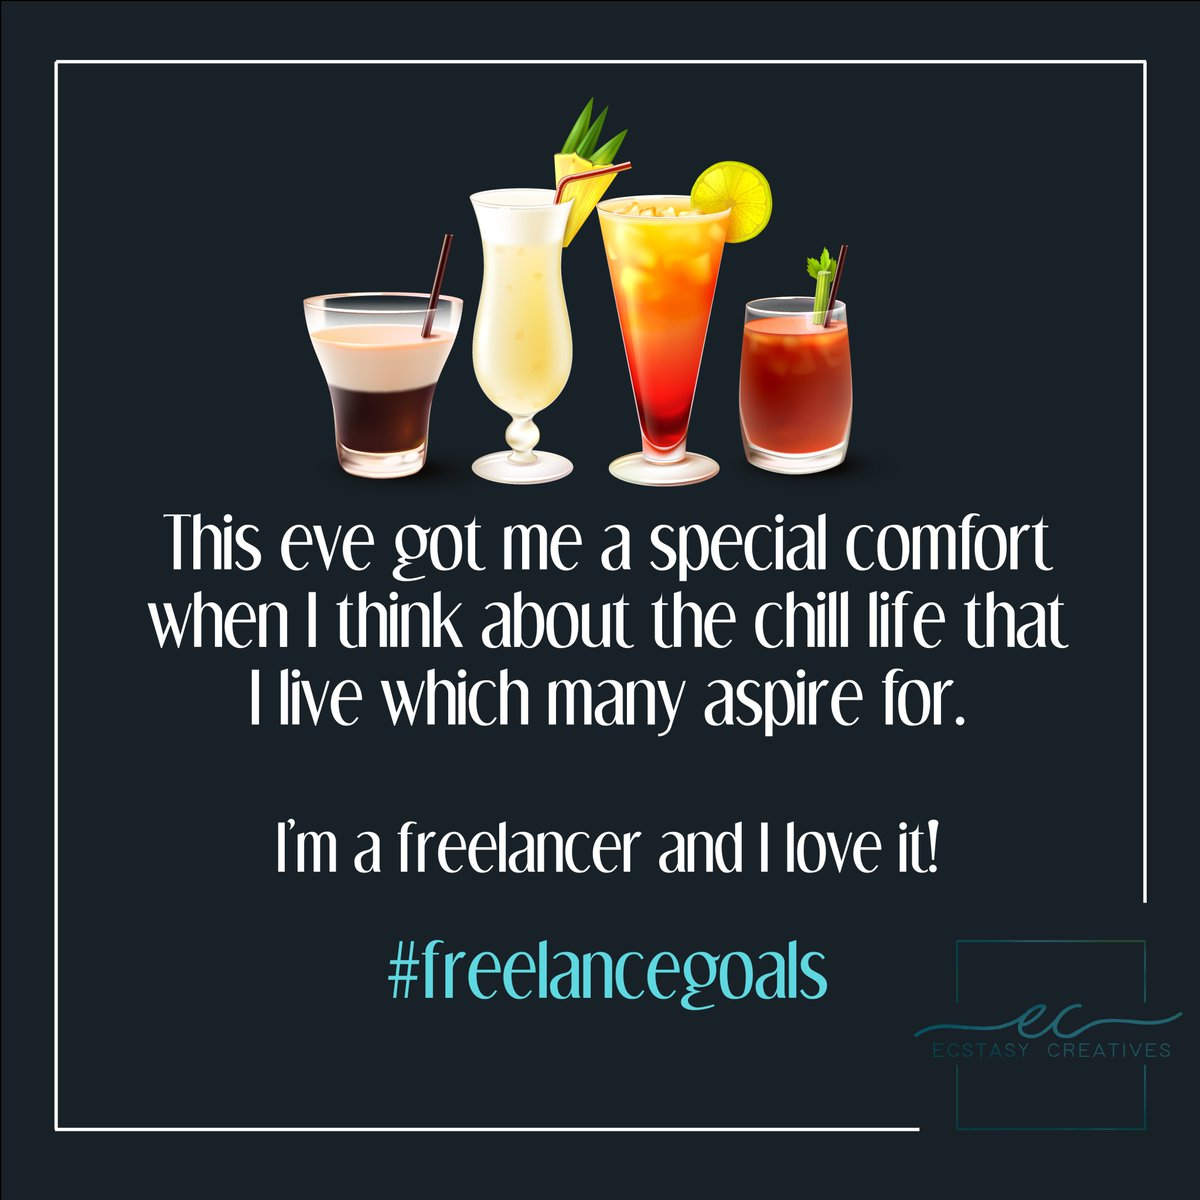 This new year, chill your life working with a happy-go freelance community! #freelancegoals #newyearseve #newyear #drinks #chill #newyearchallenge  #chilllife #newyear2020 #resolution #cold #celebrate #party #holidays #snow #trending #love #winter #community #ecstasycreativespic.twitter.com/HeYZ0YhGPO